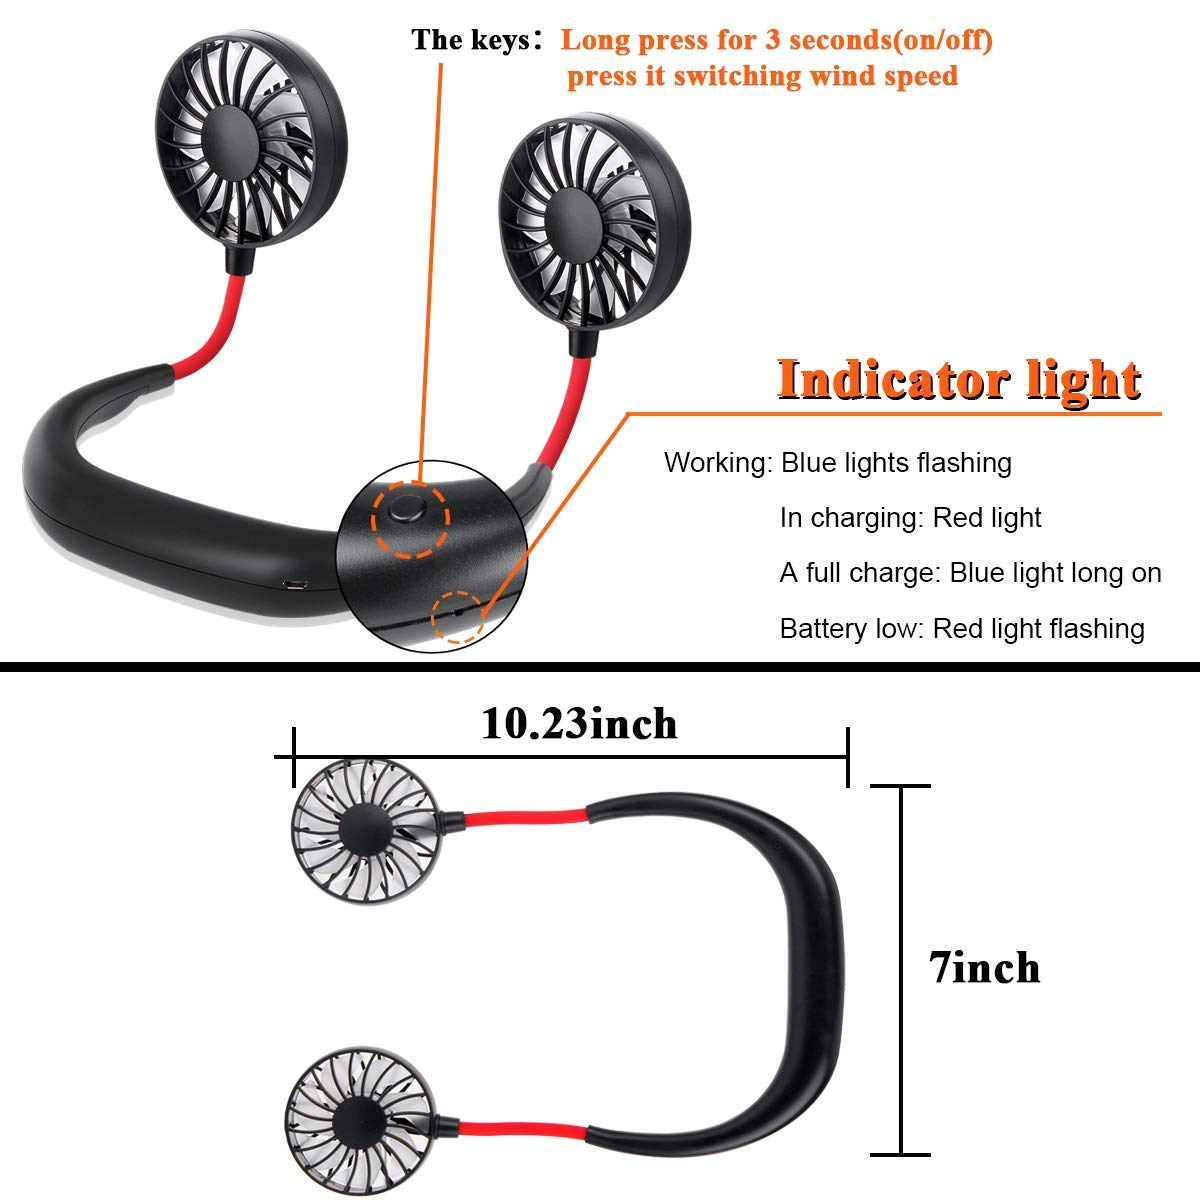 Edal Portable Fan Hand Free Small Personal Mini USB Fan 1200mAh Rechargeable Battery Operated Headphone Design Wearable Neckband Fan Necklance Fan Cooler Fan with Dual Wind Head for Traveling Outdoor Office Room